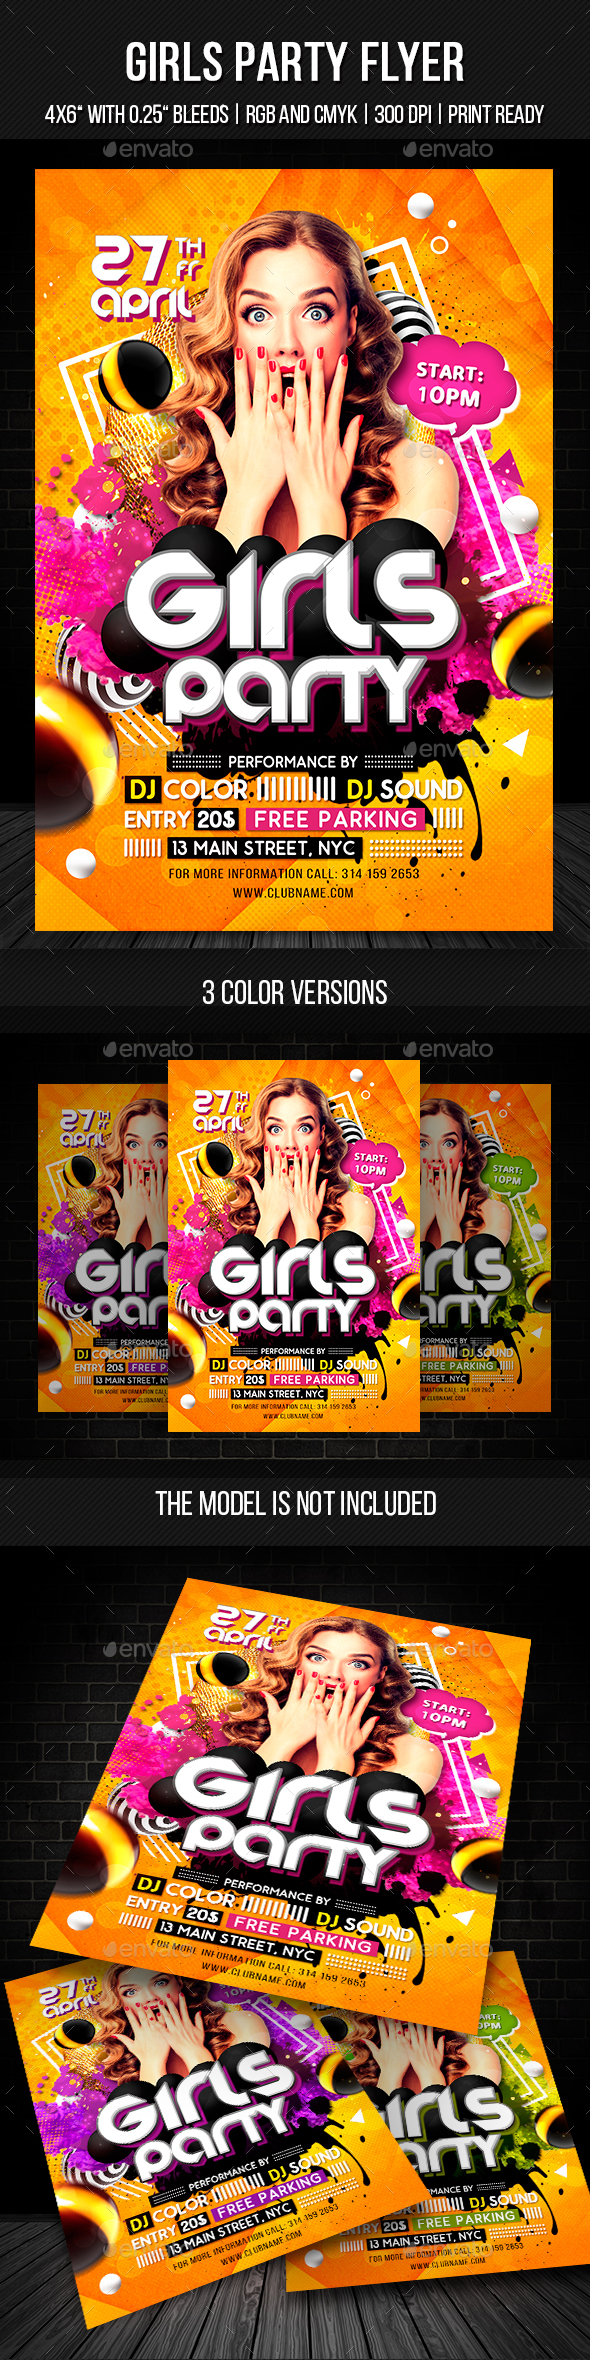 Girls Party Flyer Template - Clubs & Parties Events